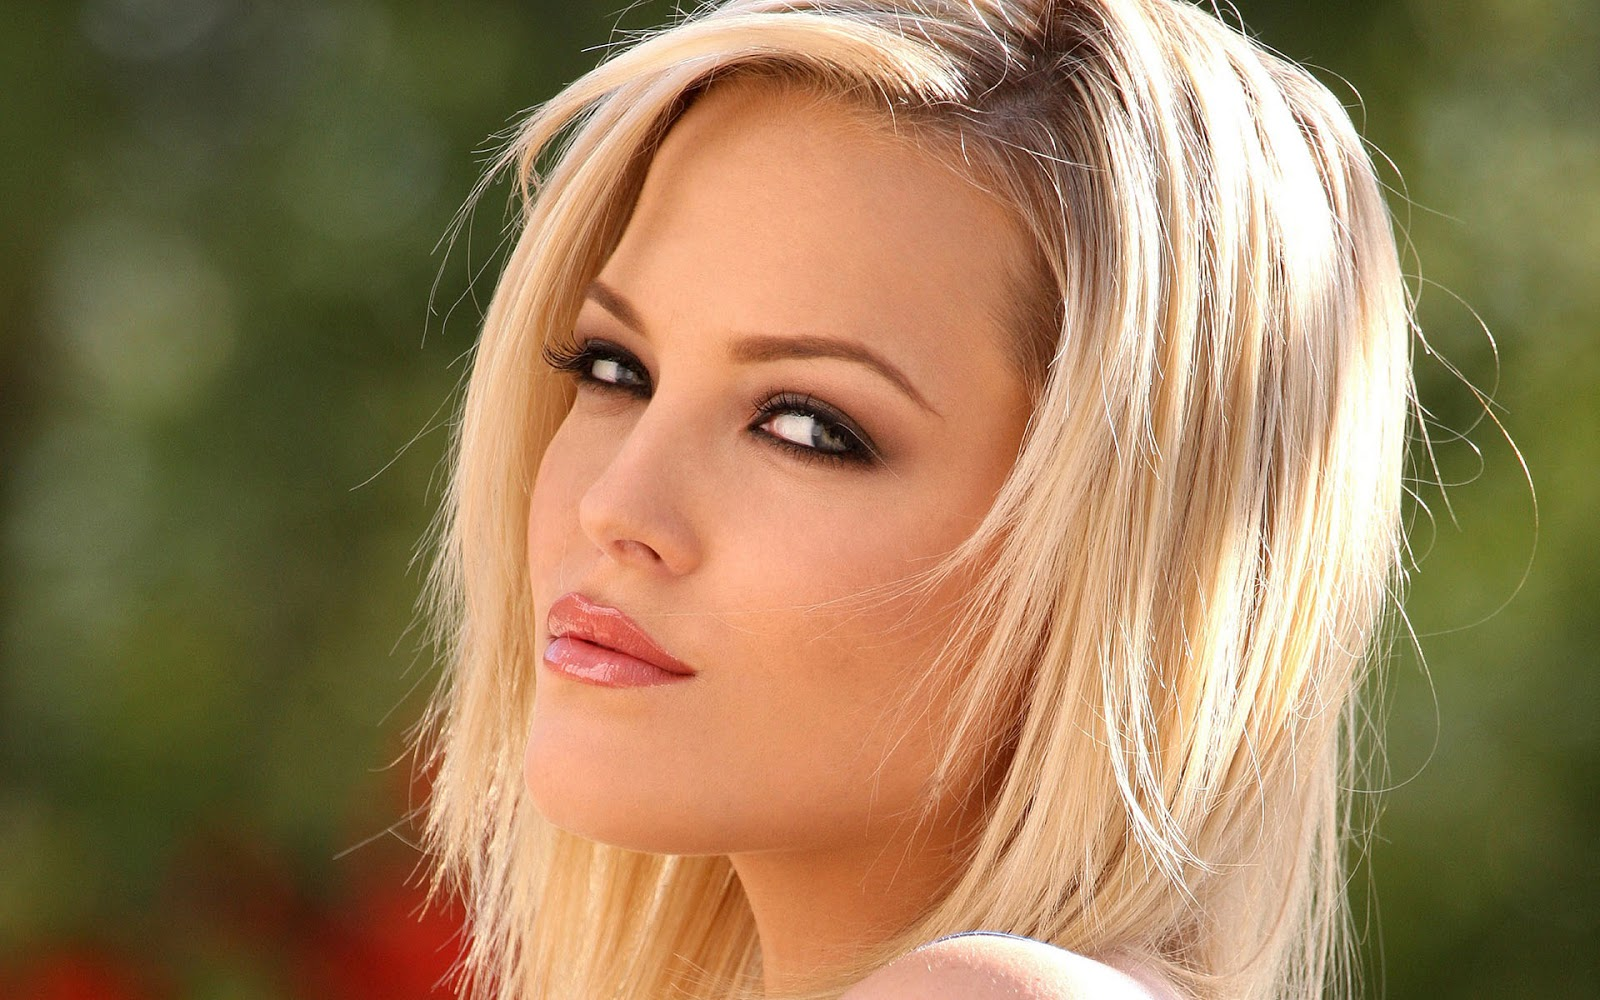 Girls Hot Beautiful Sexy And Charming: Porn Star Alexis Texas